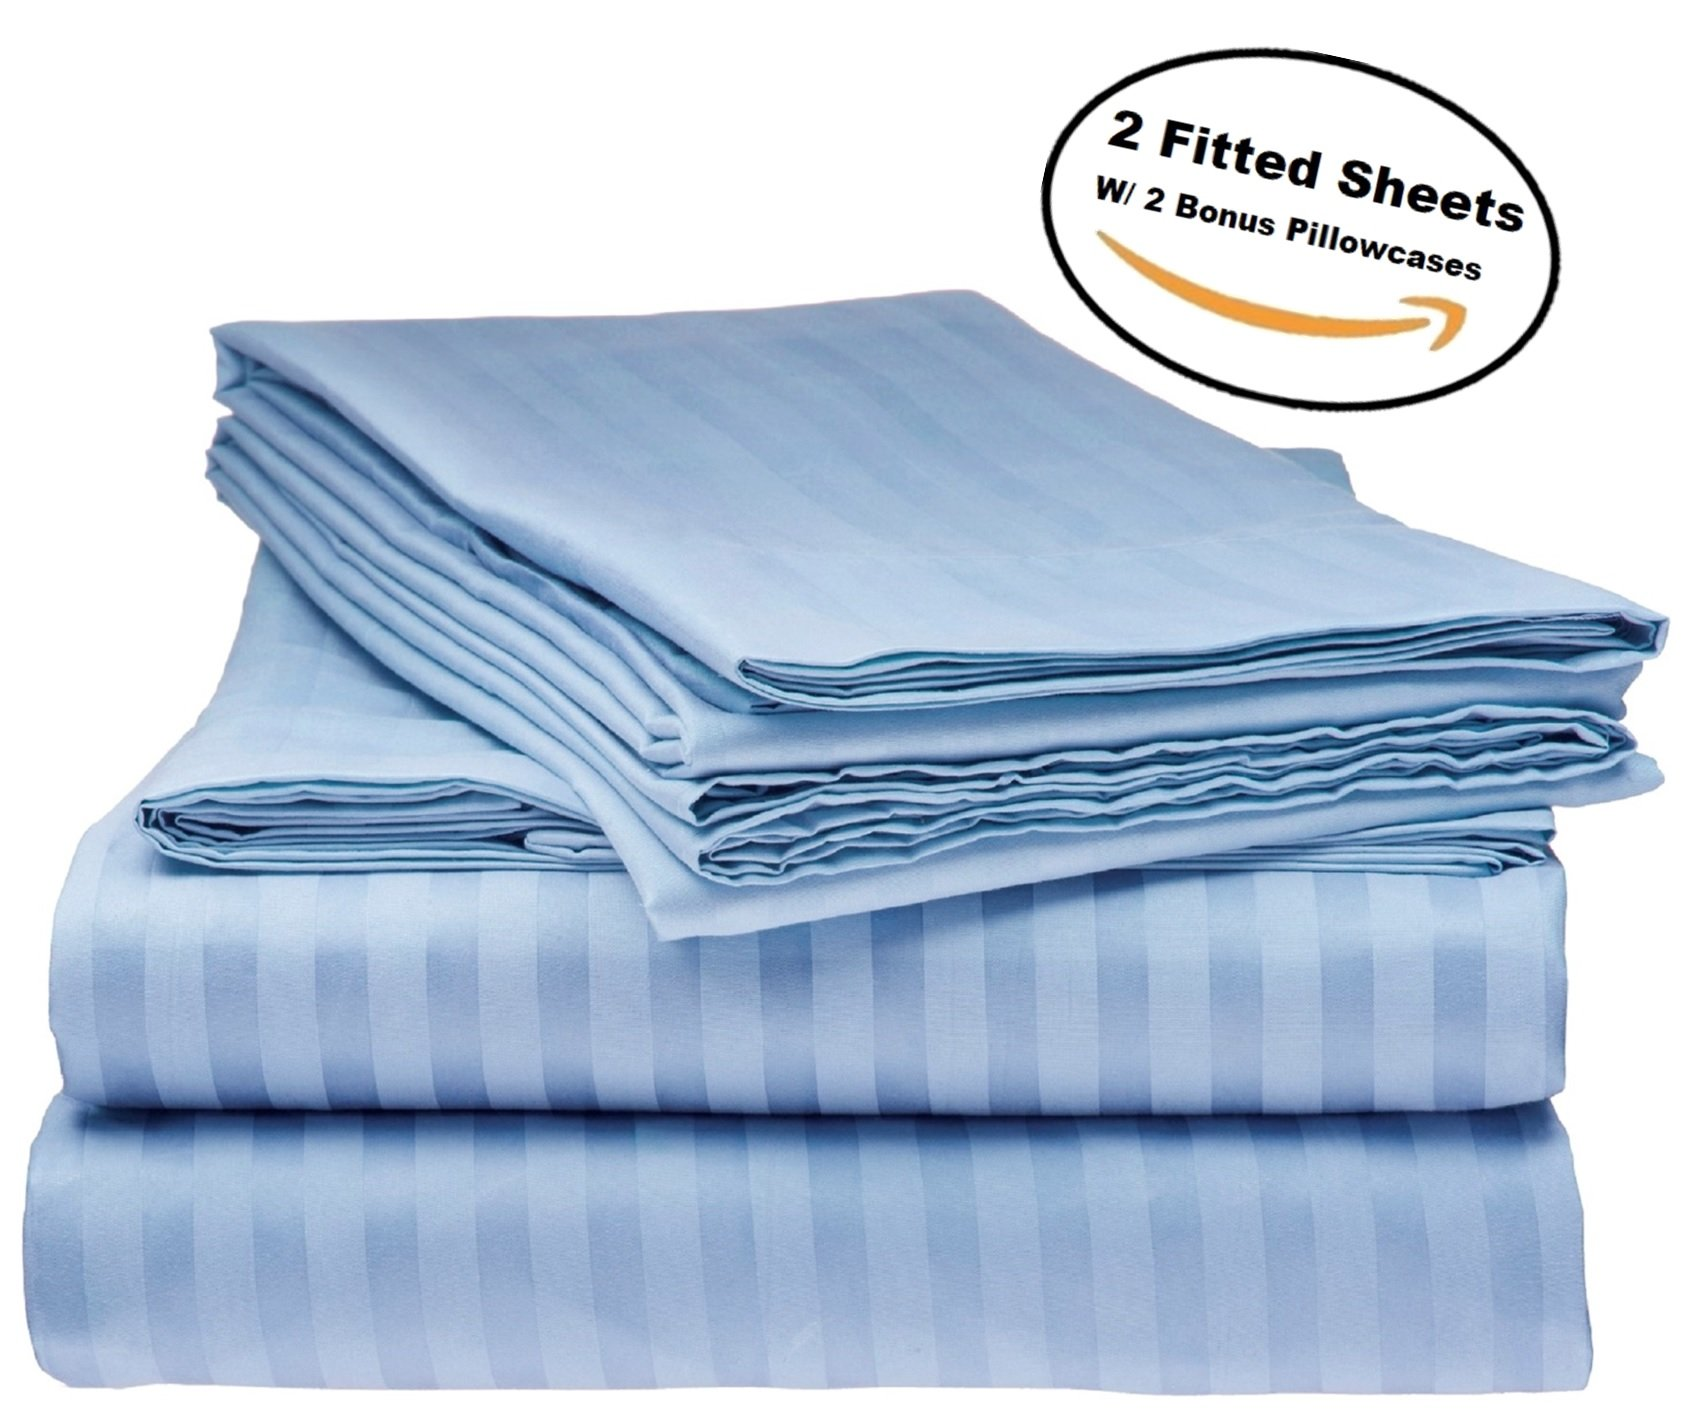 Deluxe 2Pk Fitted Bed Sheets - Bottom Sheet, Soft 1800 Bedding, Highest Quality Brushed Microfiber, Hypoallergenic, Wrinkle, Fade, Stain Resistant - Bonus 2 Free pillowcases - (King Size Light Blue)